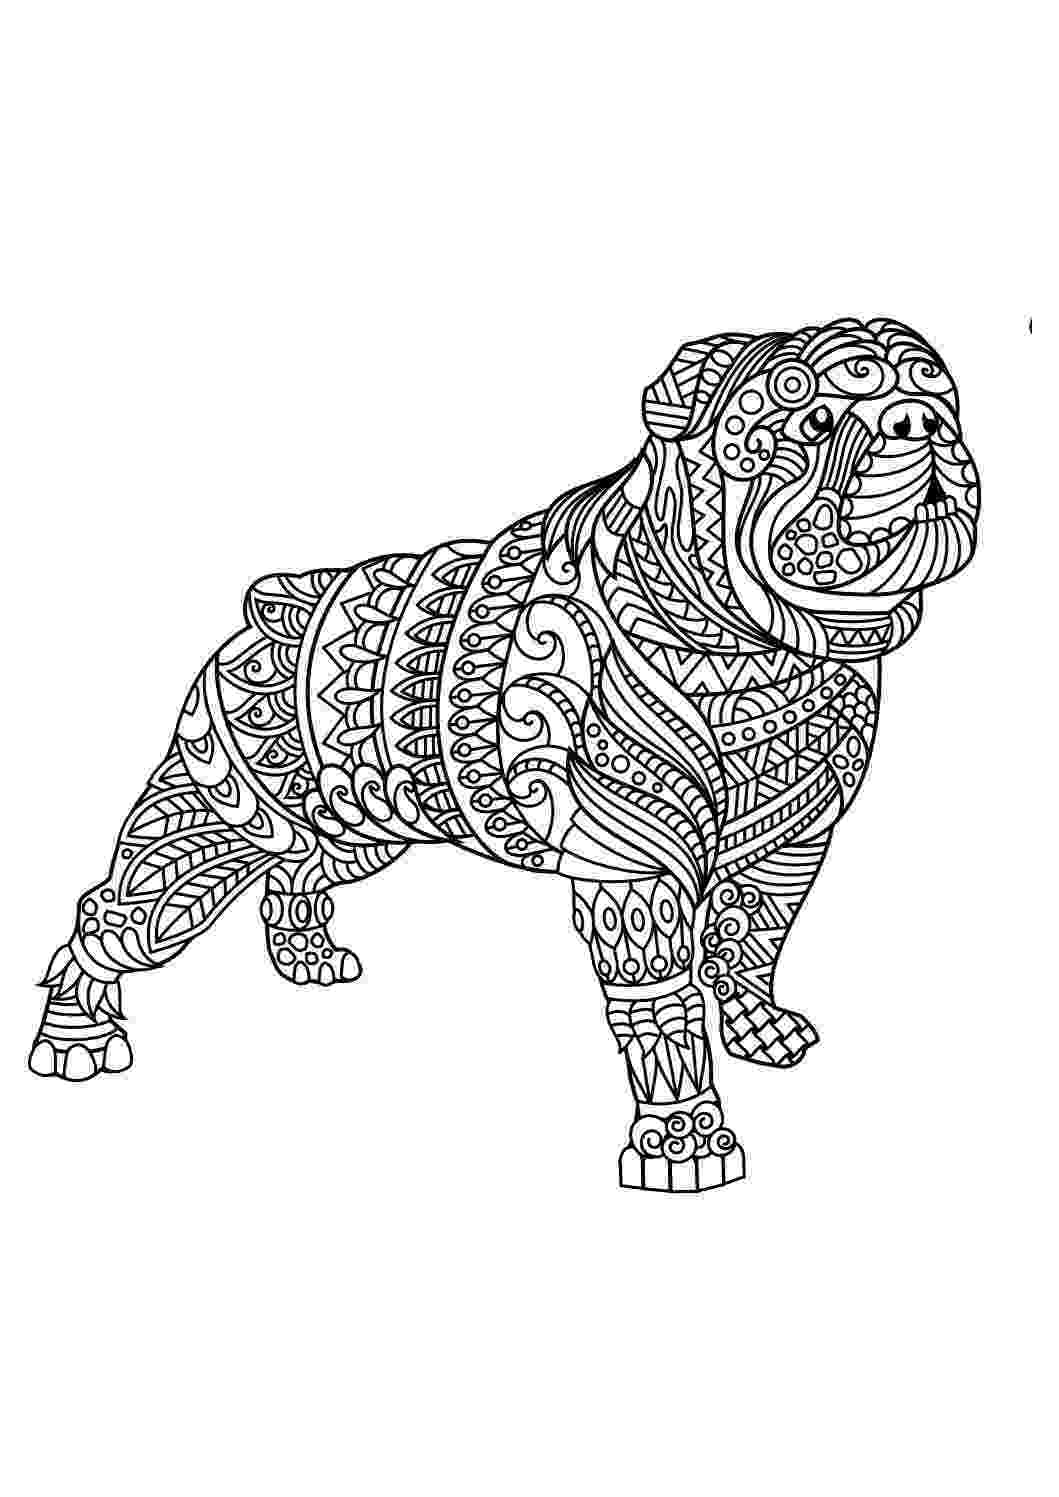 esl colouring pages animals animal coloring pages pdf coloring animals dog colouring pages esl animals